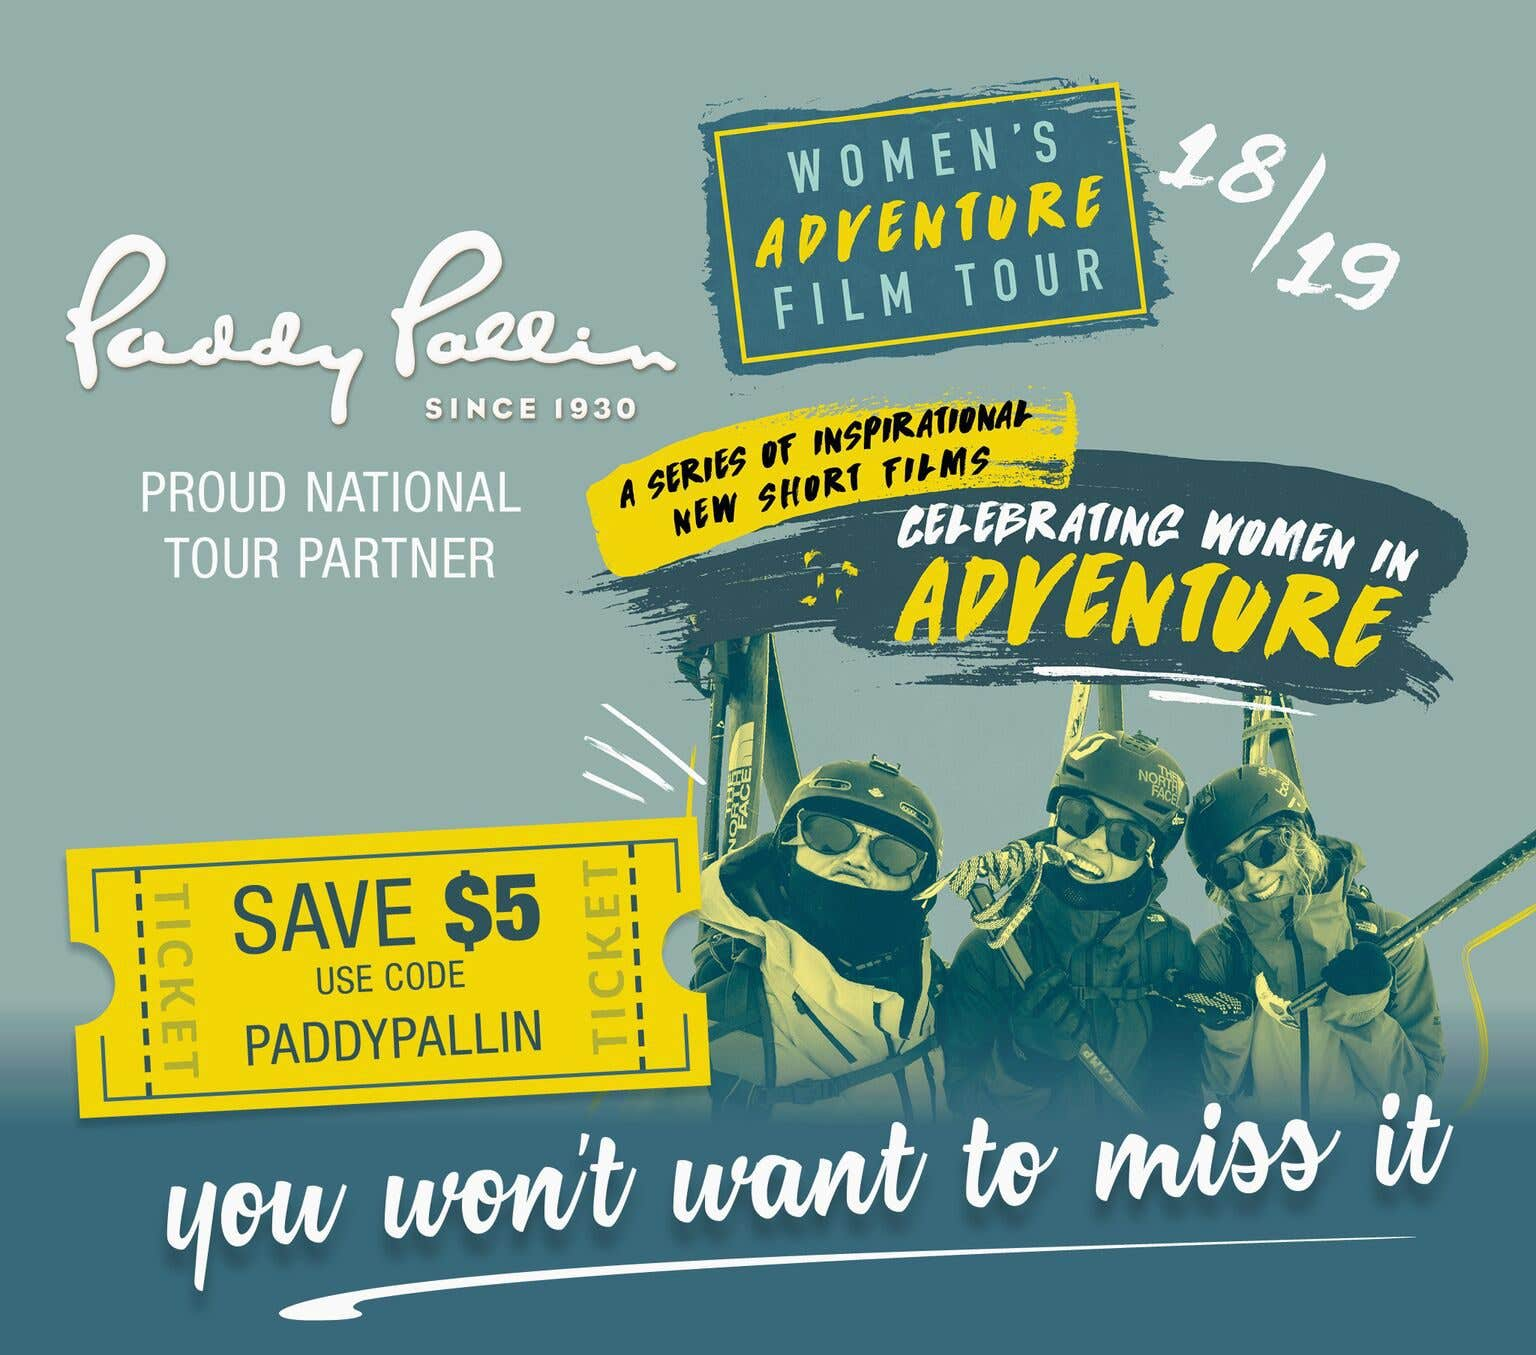 Women's Adventure Film Tour Paddy Pallin Discount Code